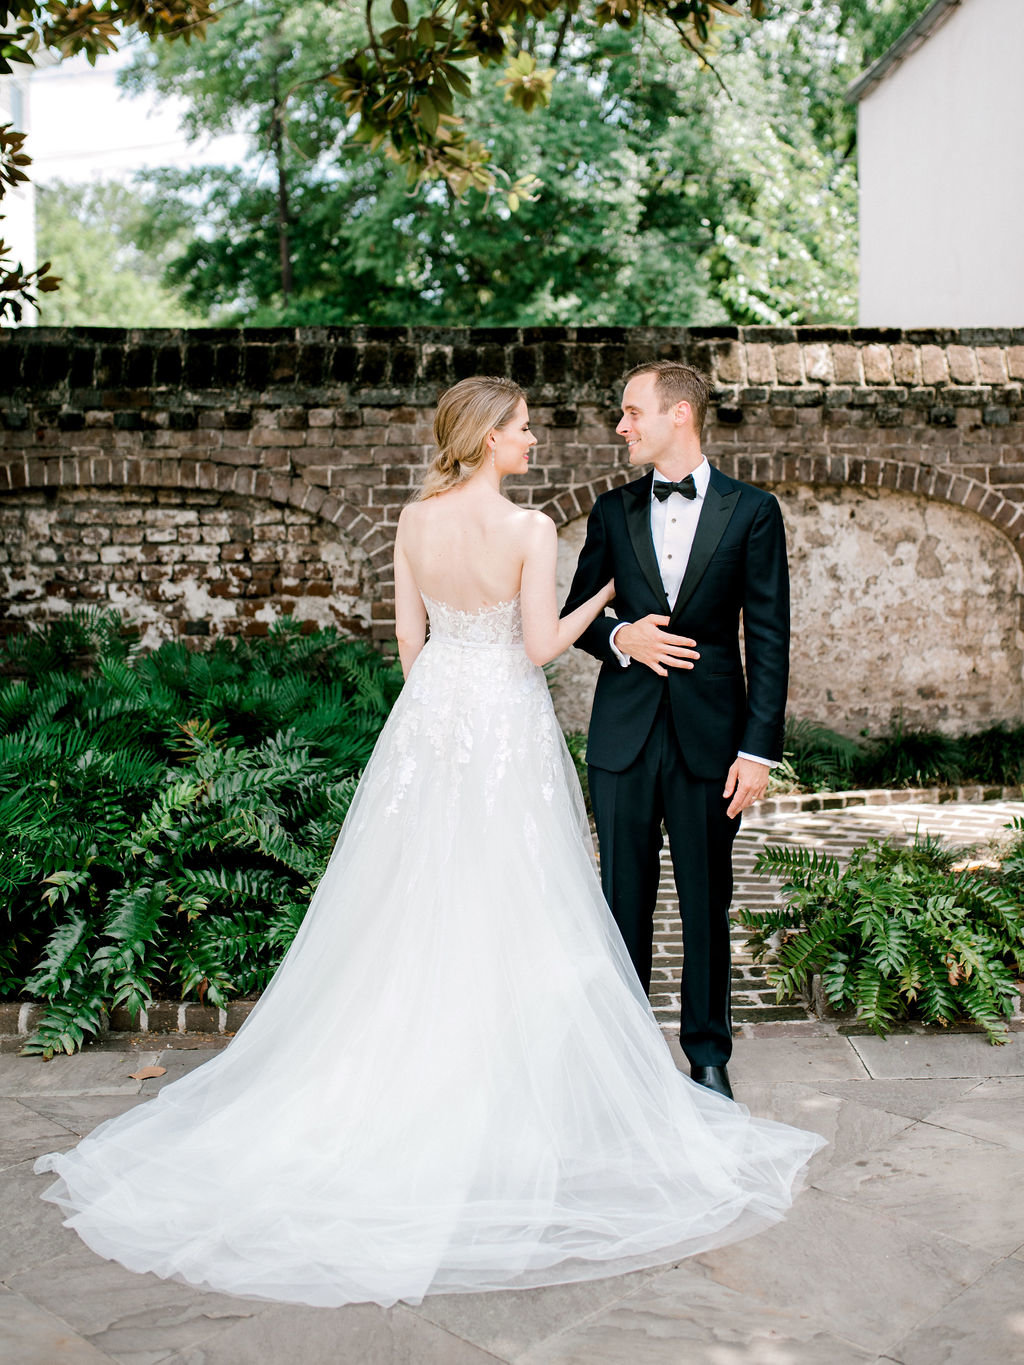 First look in garden destination wedding Charleston South Carolina